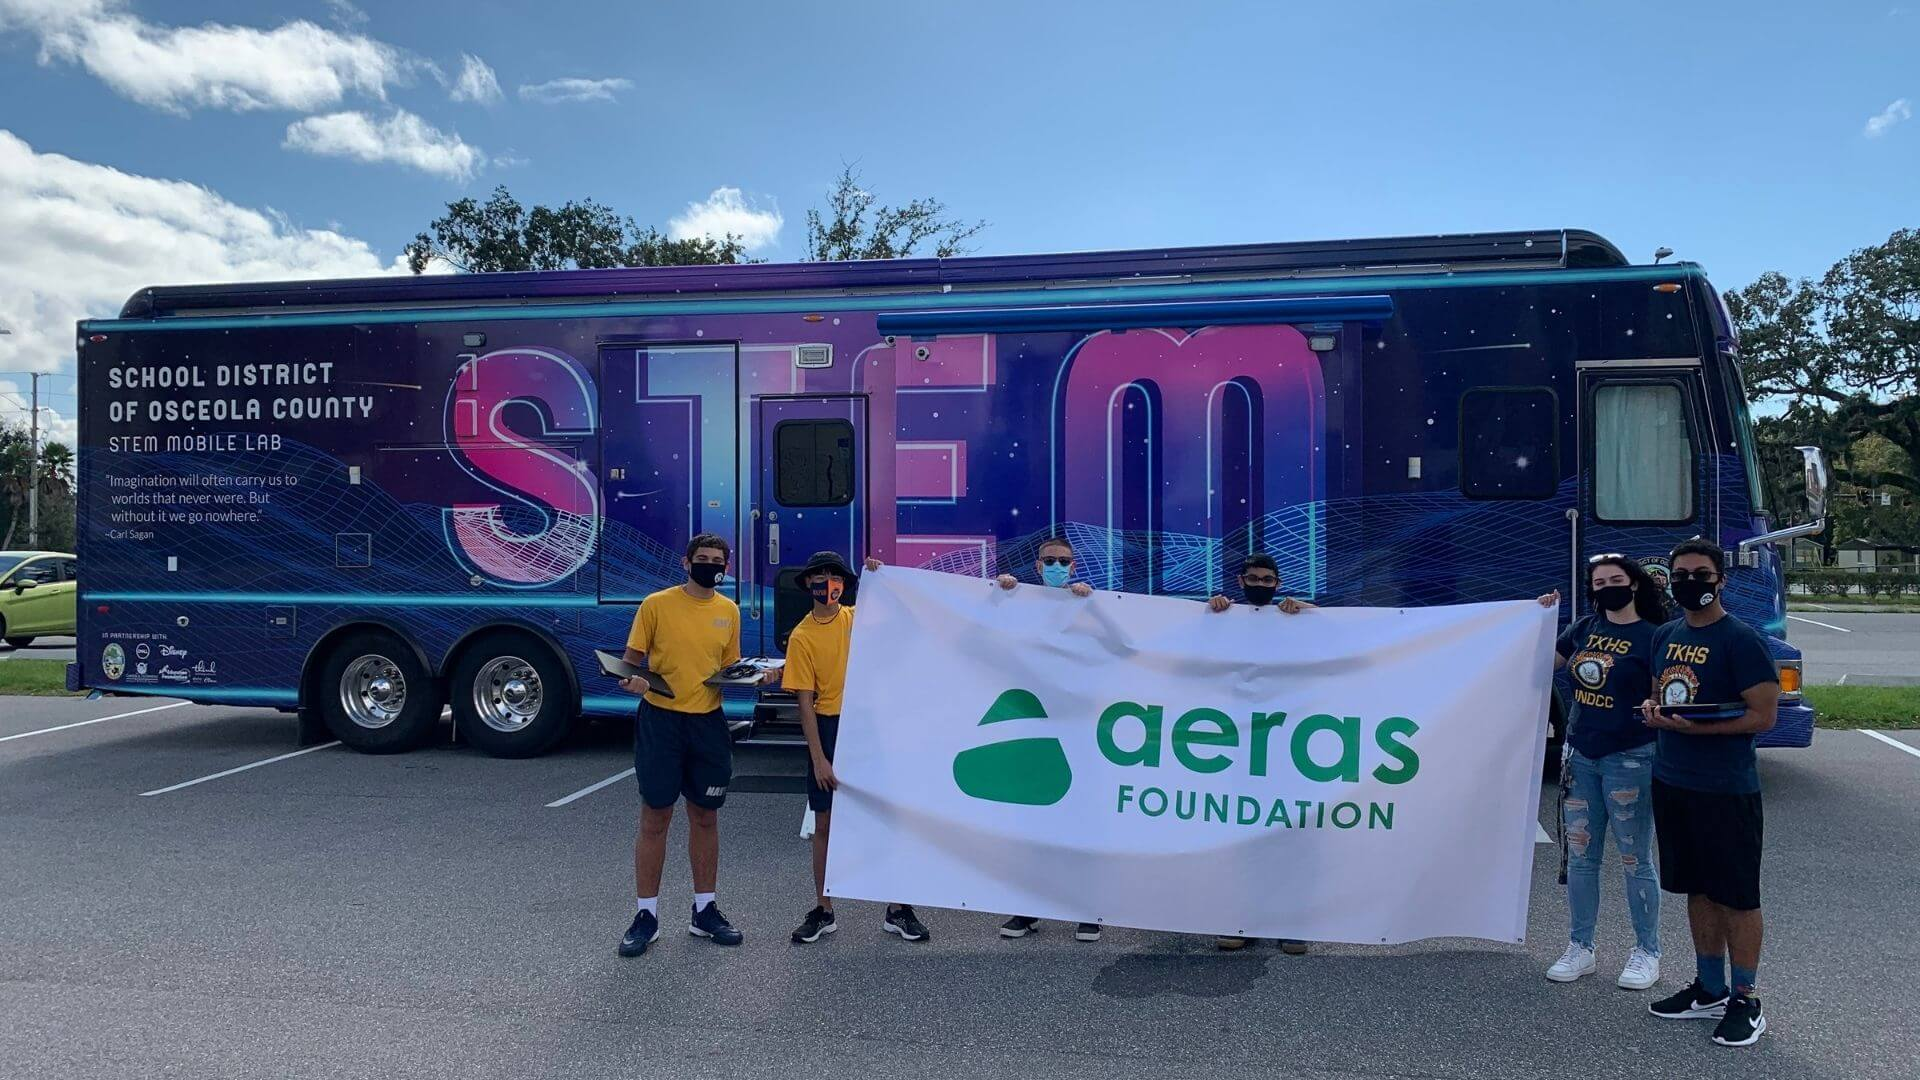 Teens in front of a STEM themed bus holding a banner